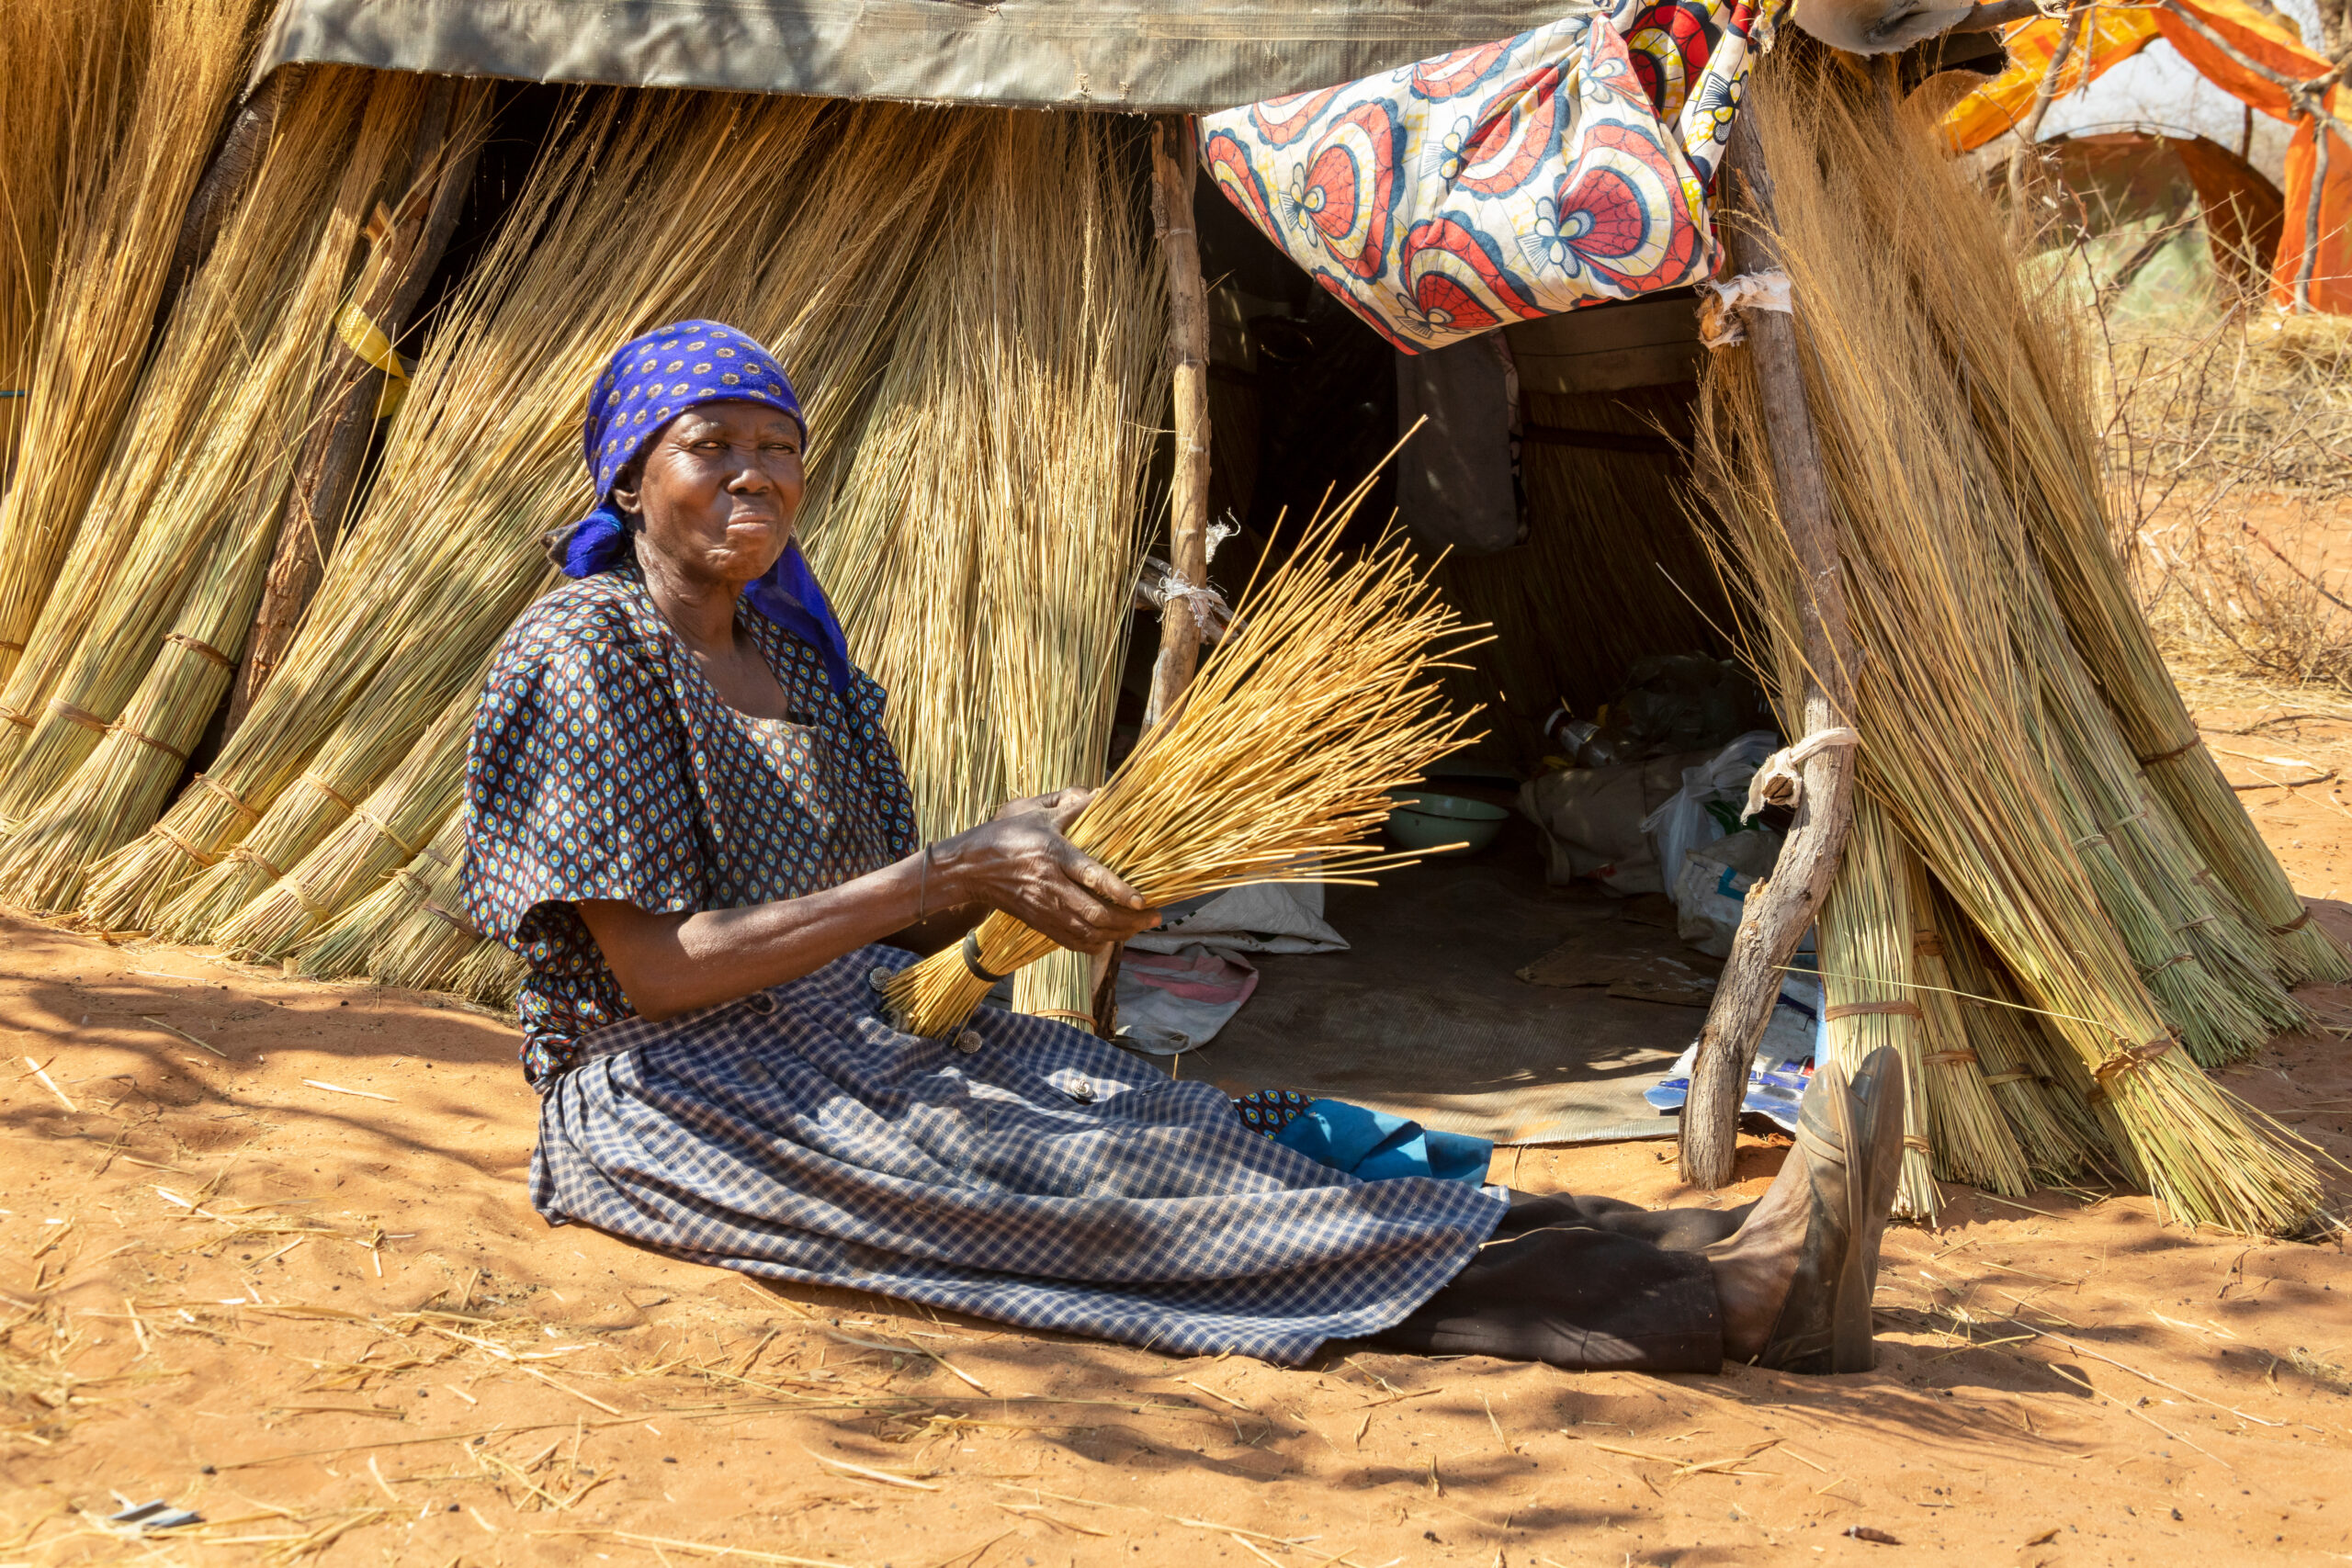 5 Ways Usaid Empowers Women as Leaders Against Climate Crisis